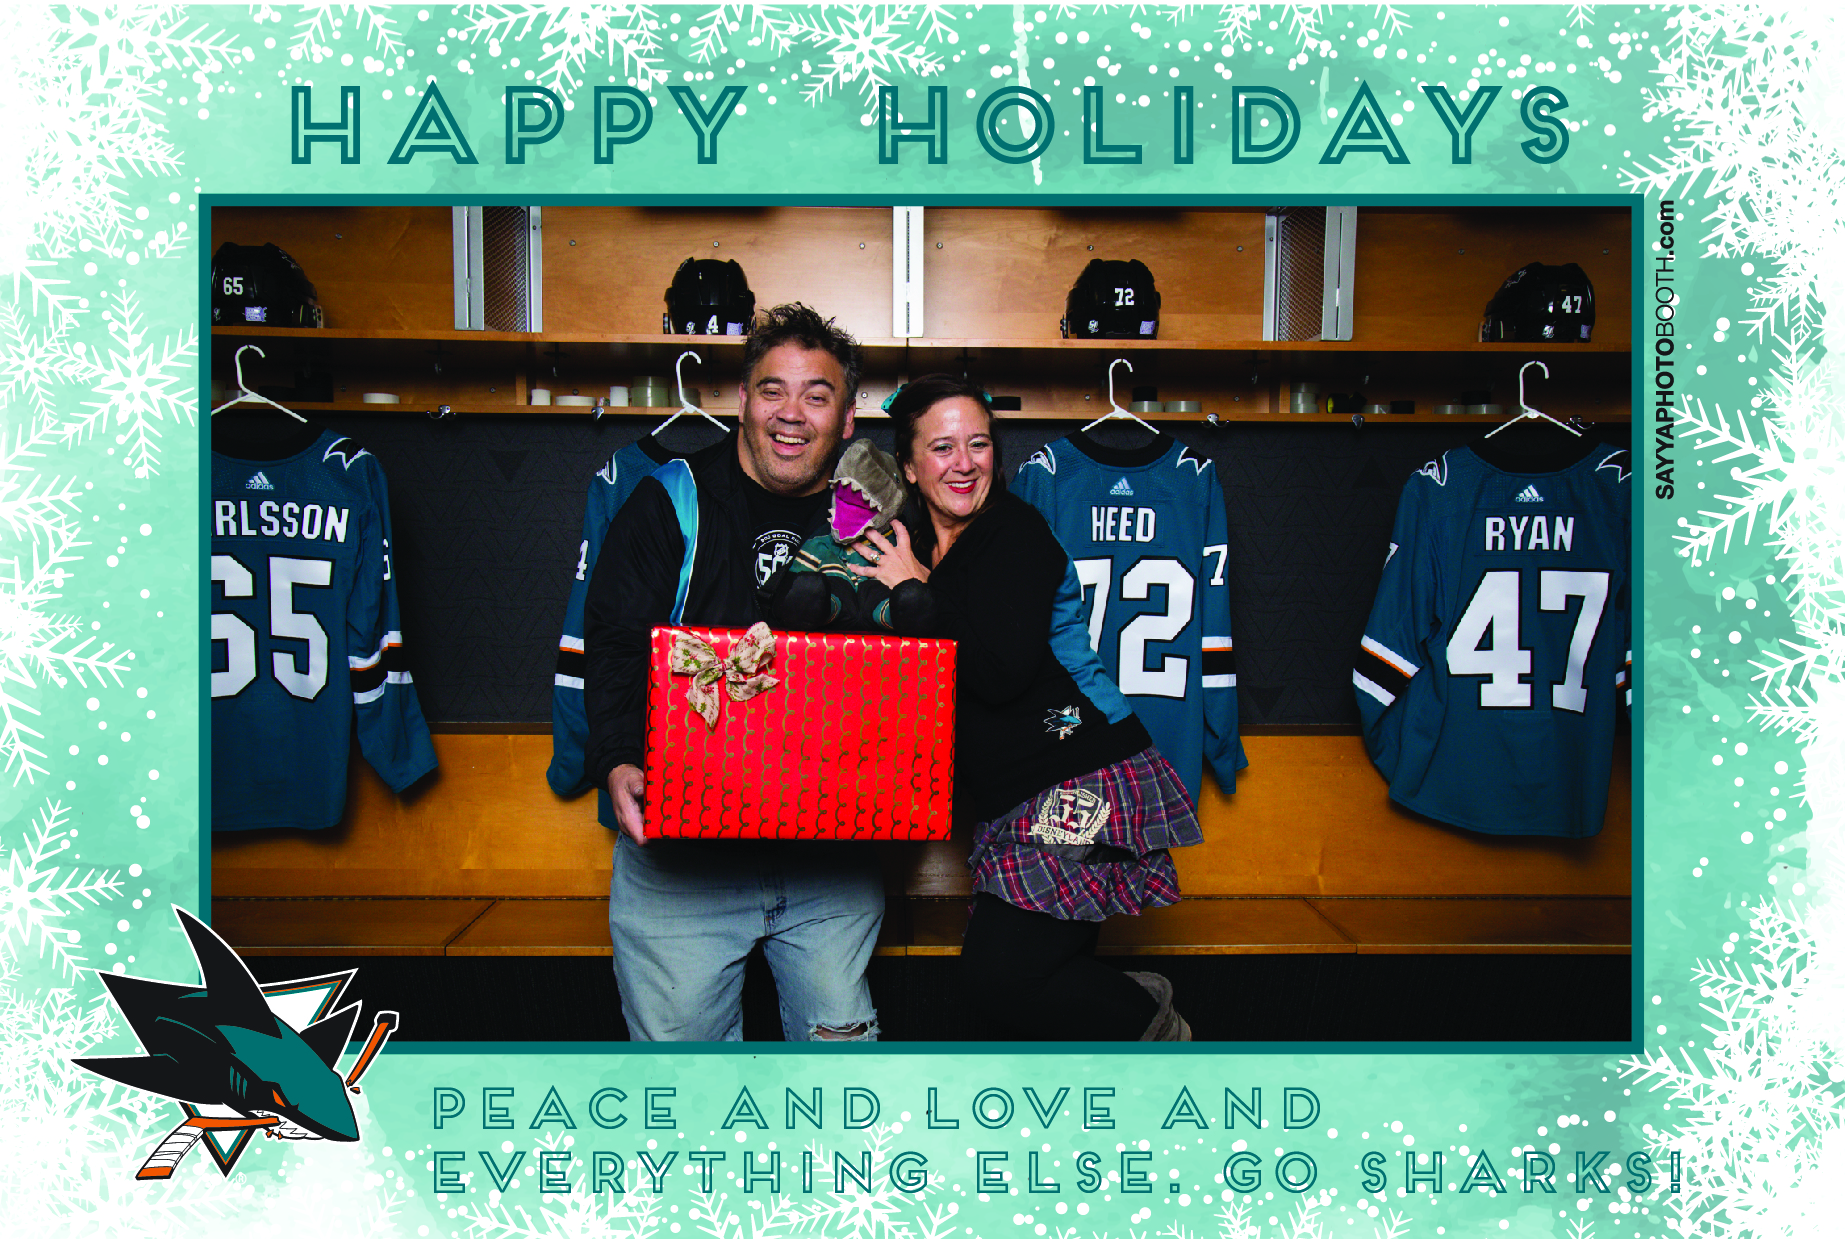 Sharks STH Holiday Photos 8:30-9PM